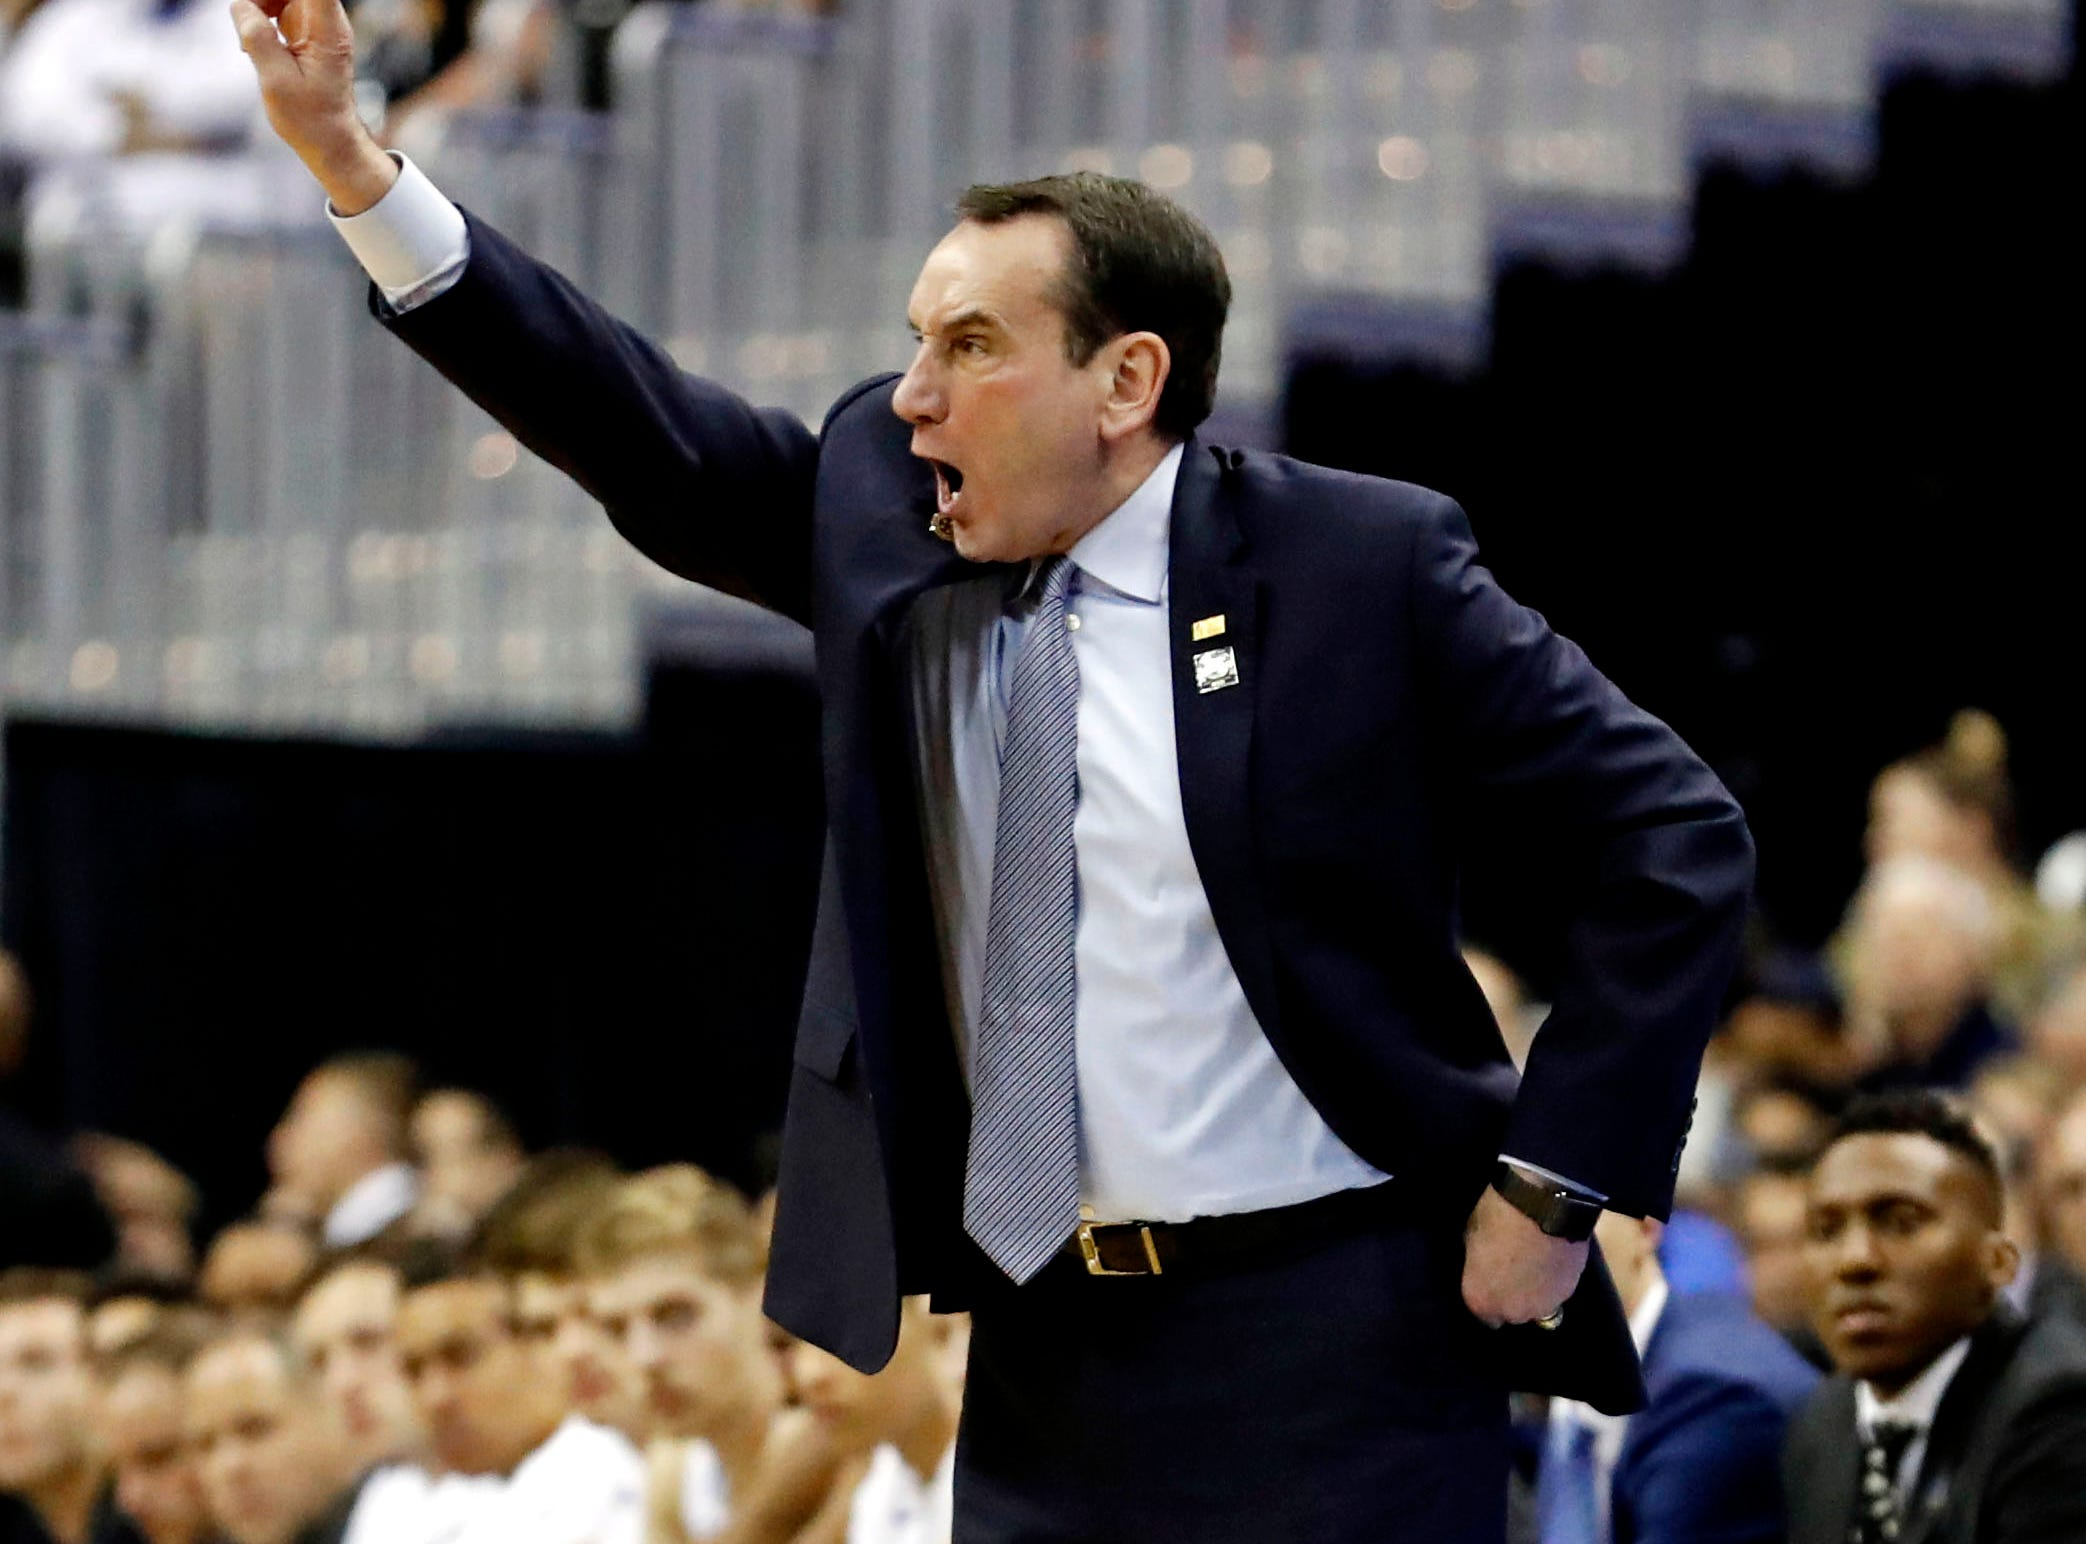 Mar 31, 2019; Washington, DC, USA; Duke Blue Devils head coach Mike Krzyzewski during the first half against the Michigan State Spartans in the championship game of the east regional of the 2019 NCAA Tournament at Capital One Arena. Mandatory Credit: Geoff Burke-USA TODAY Sports